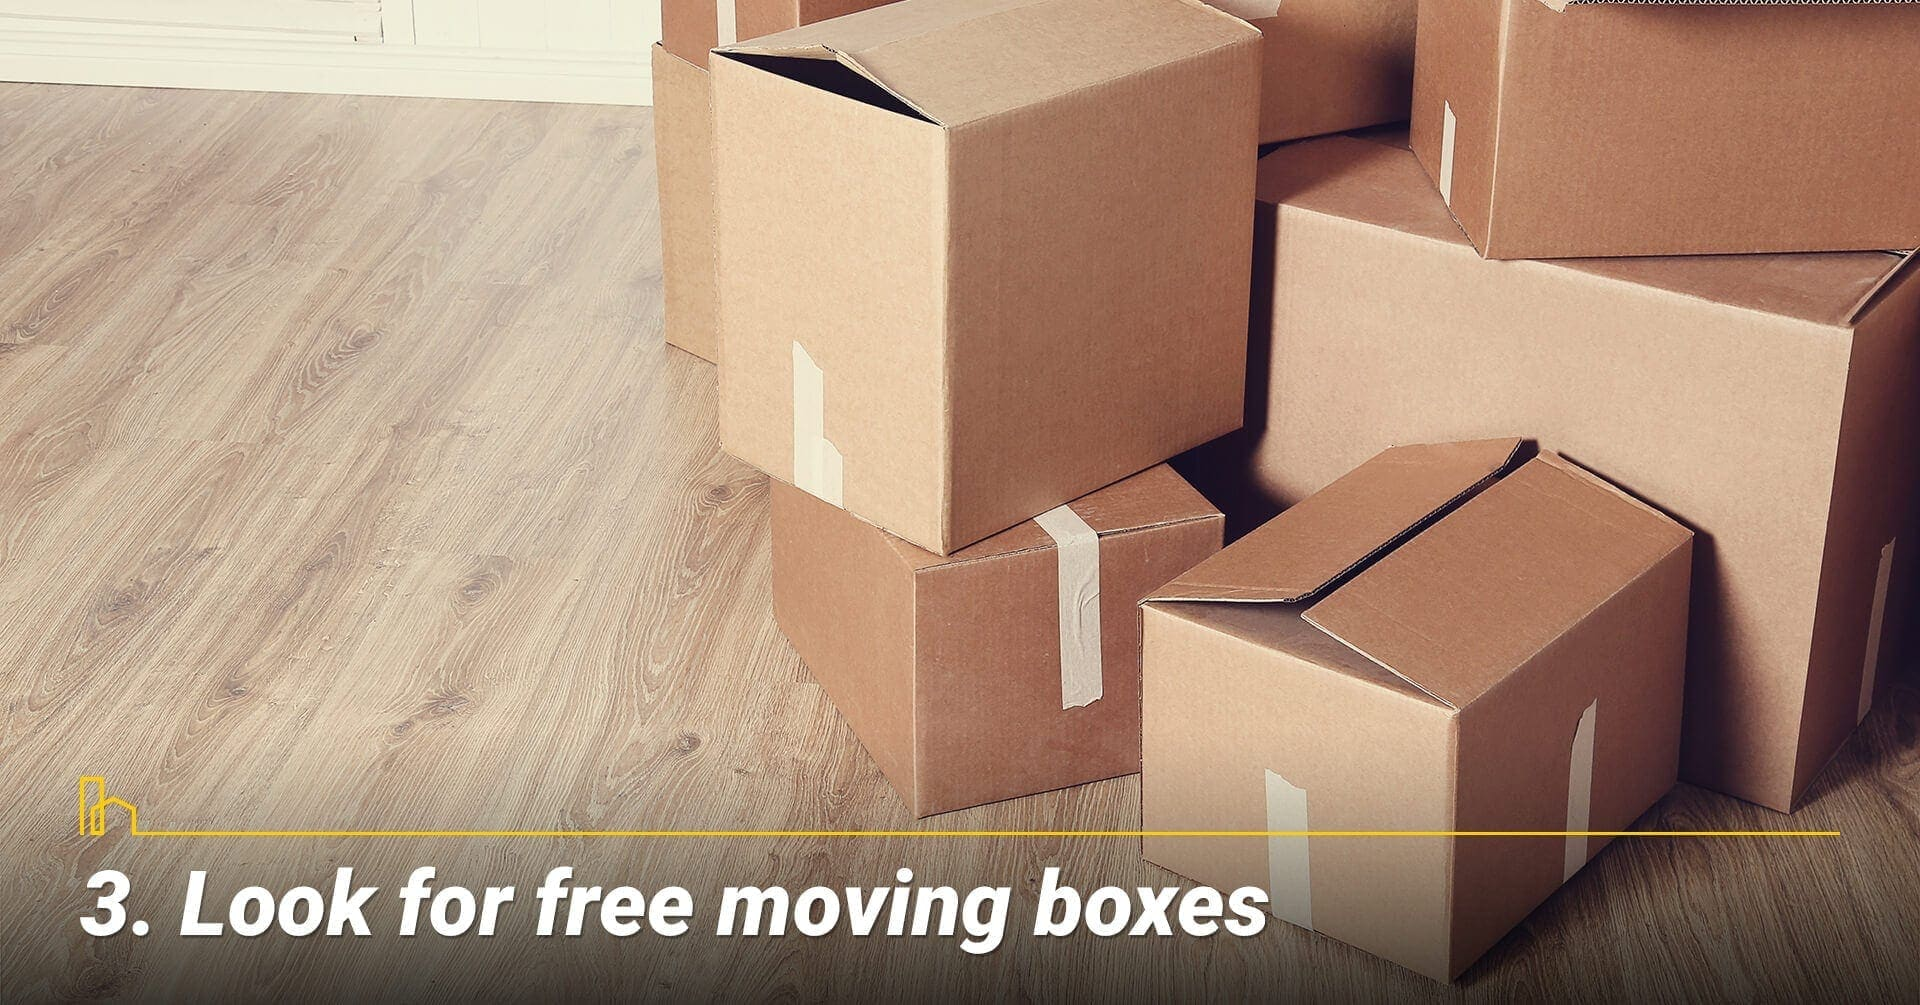 Look for free moving boxes, reuse moving boxes to reduce costs